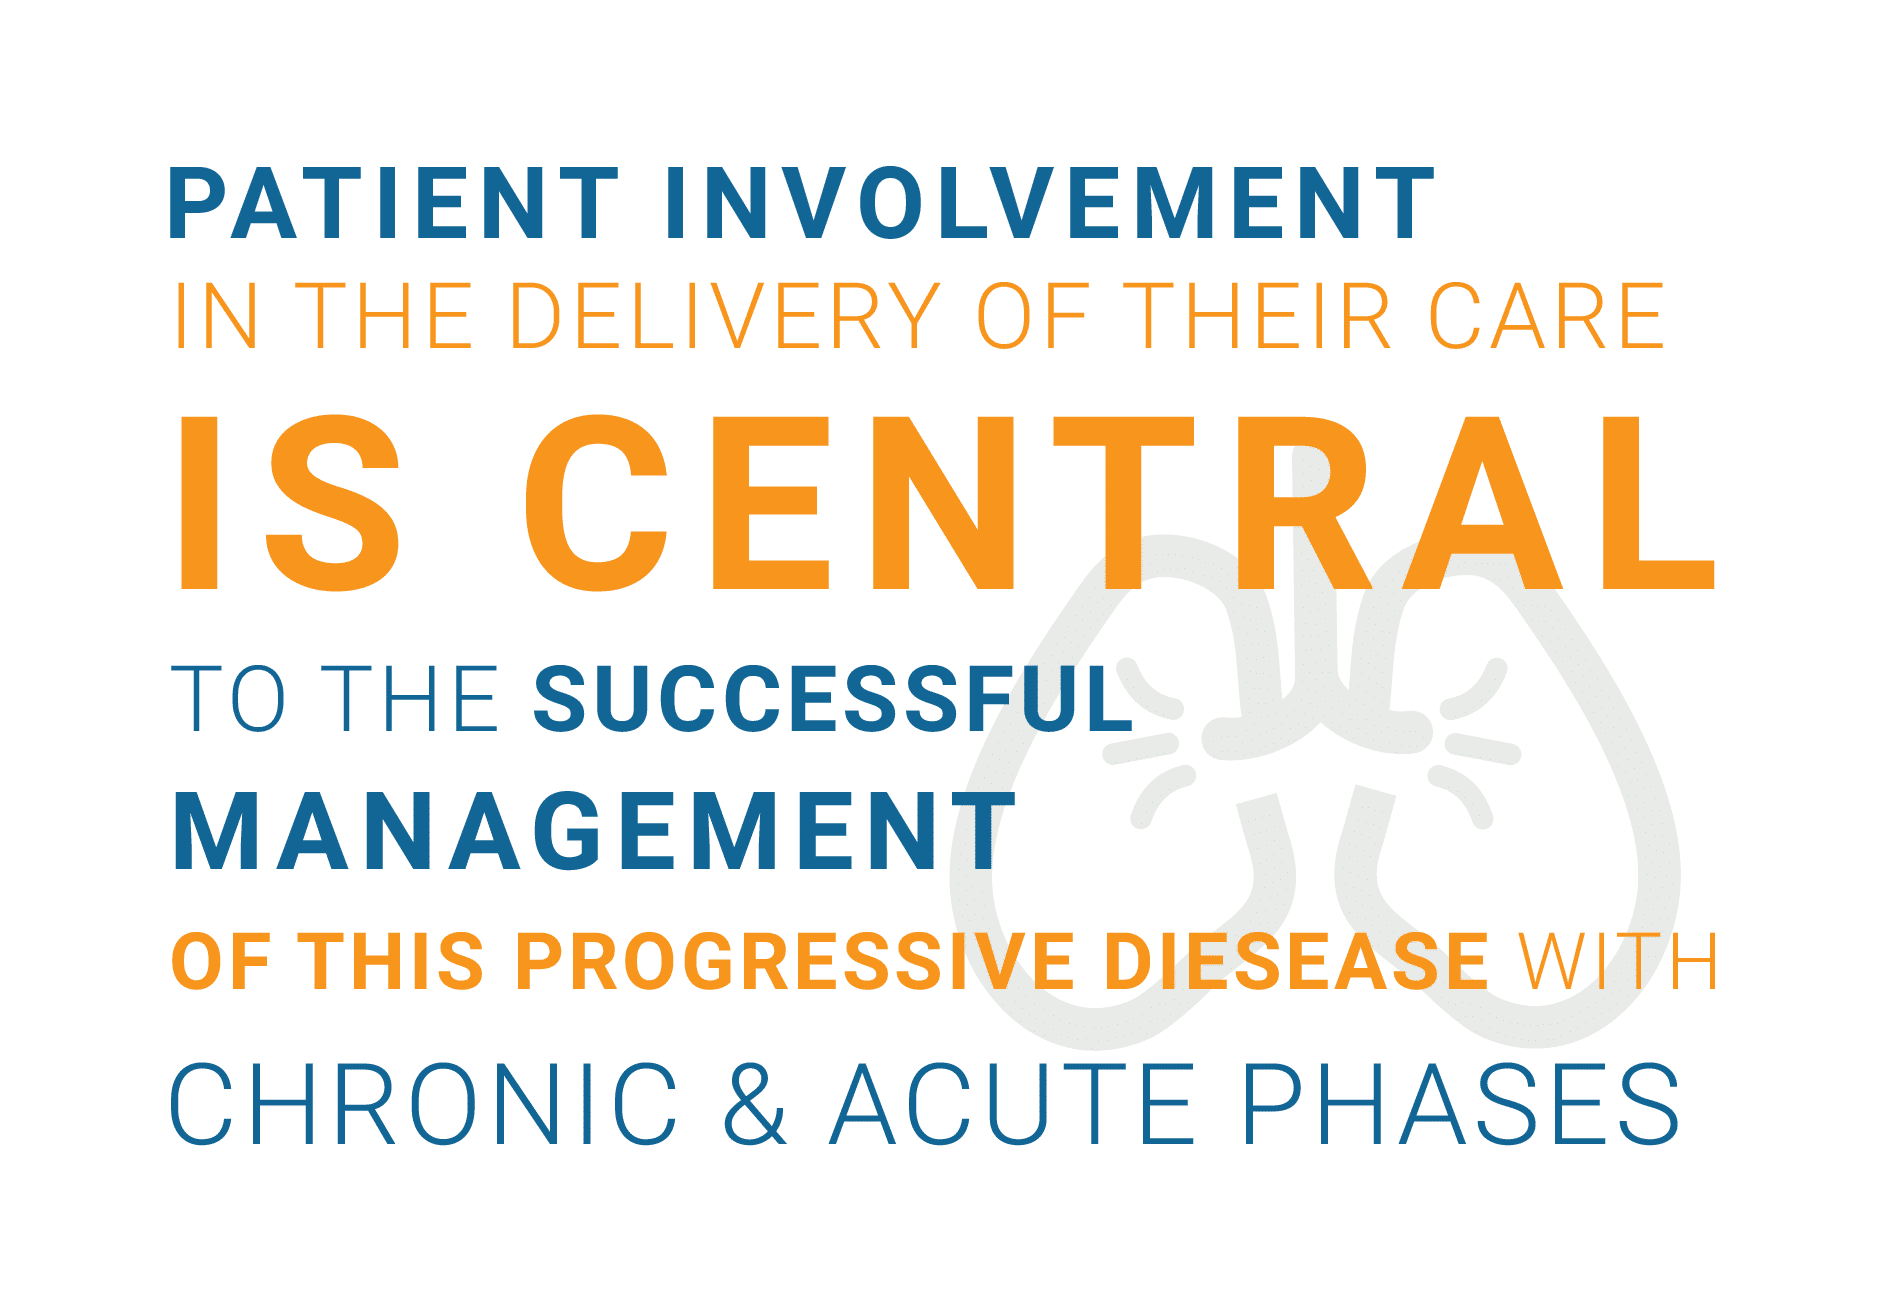 patient involvement, central, successful management, progressive disease, chronic and acute phases.